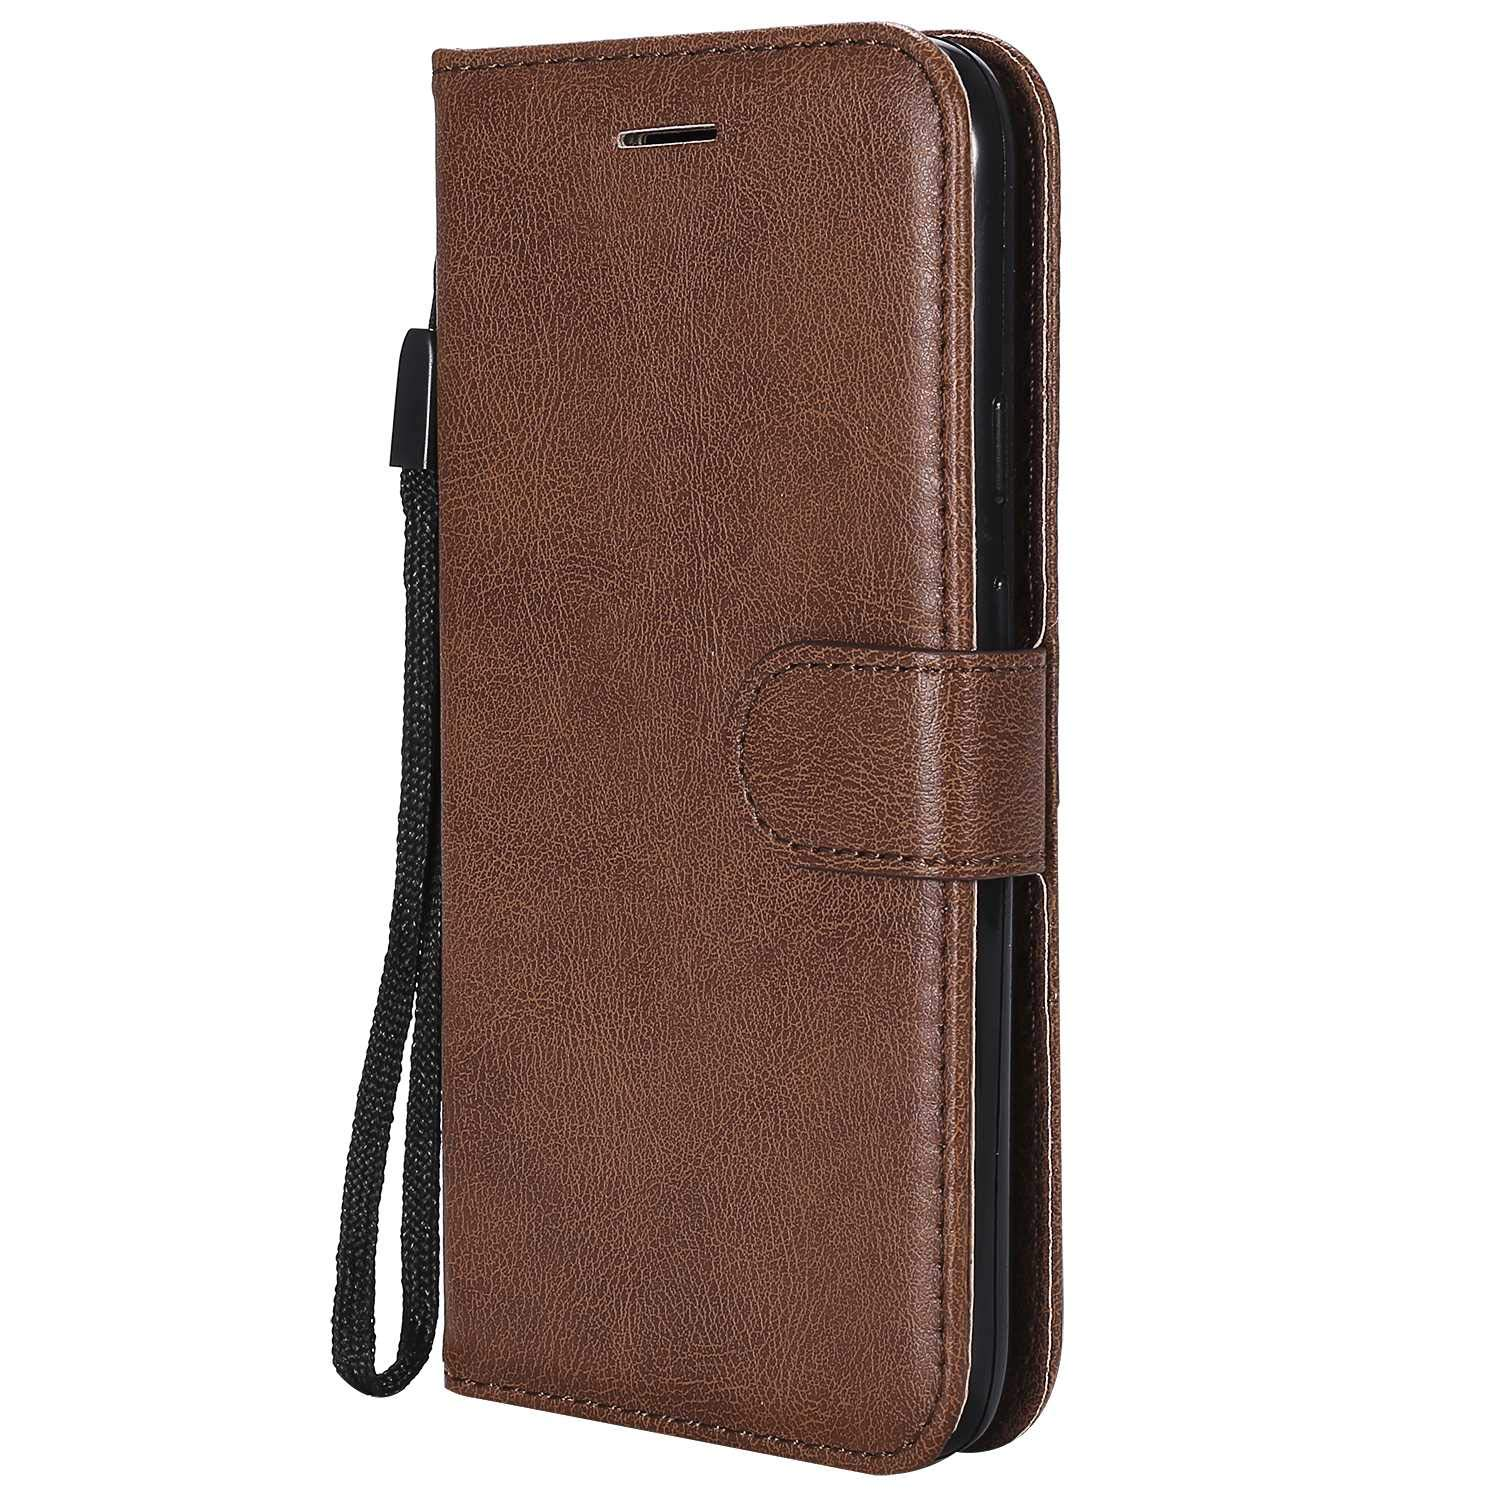 Moto G4 Play Wallet Case, UNEXTATI Leather Flip Case with Magnetic Closure and Card Holders, Anti-Shock Bumper Cover for Moto G4 Play (Brown #1)